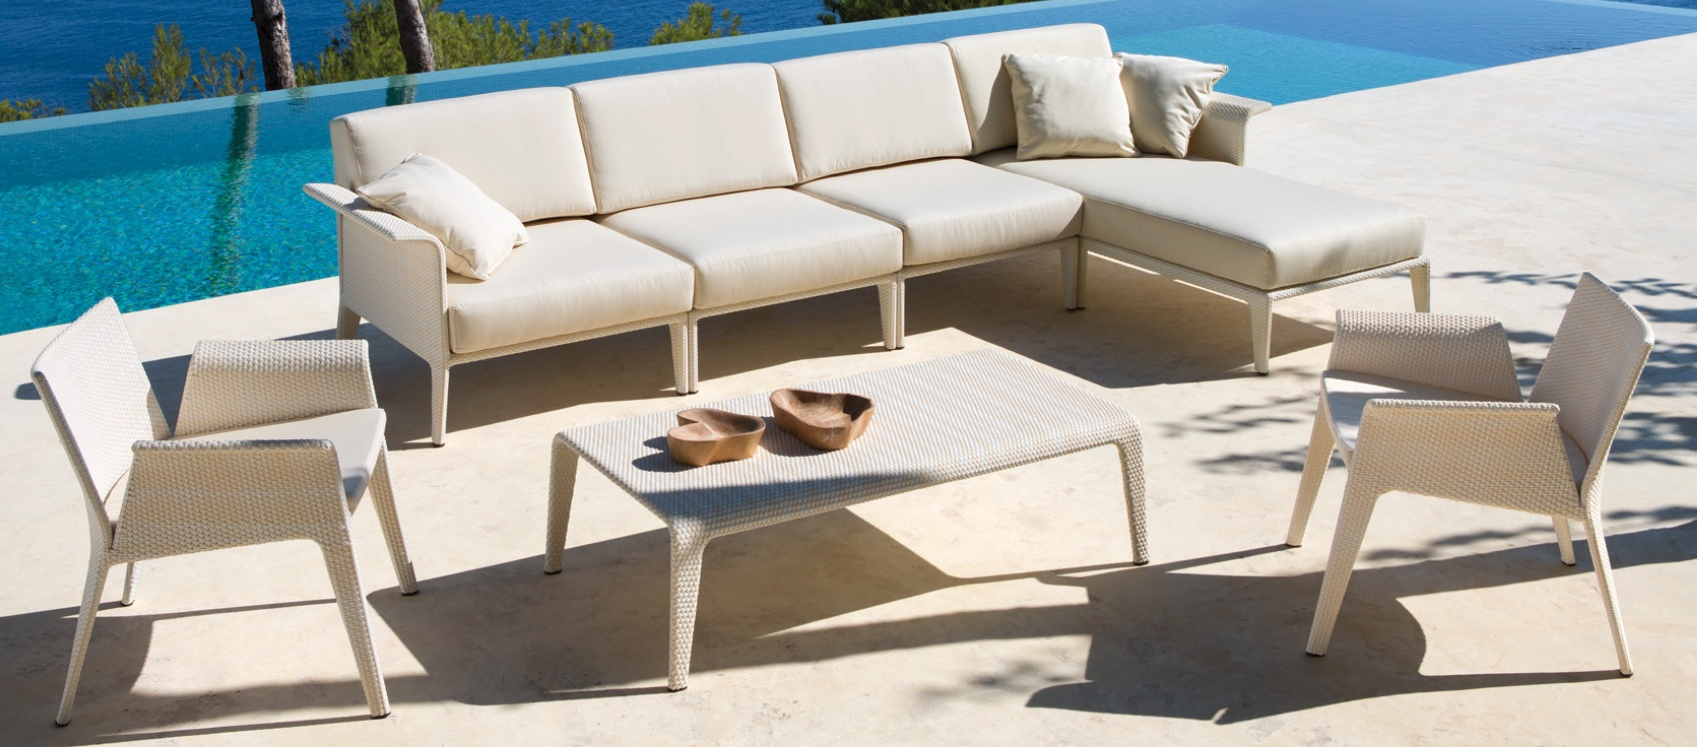 Astrid Wicker Sectional Sofa – Couture Outdoor Throughout Current Astrid Wicker Patio Sofas With Cushions (View 21 of 25)